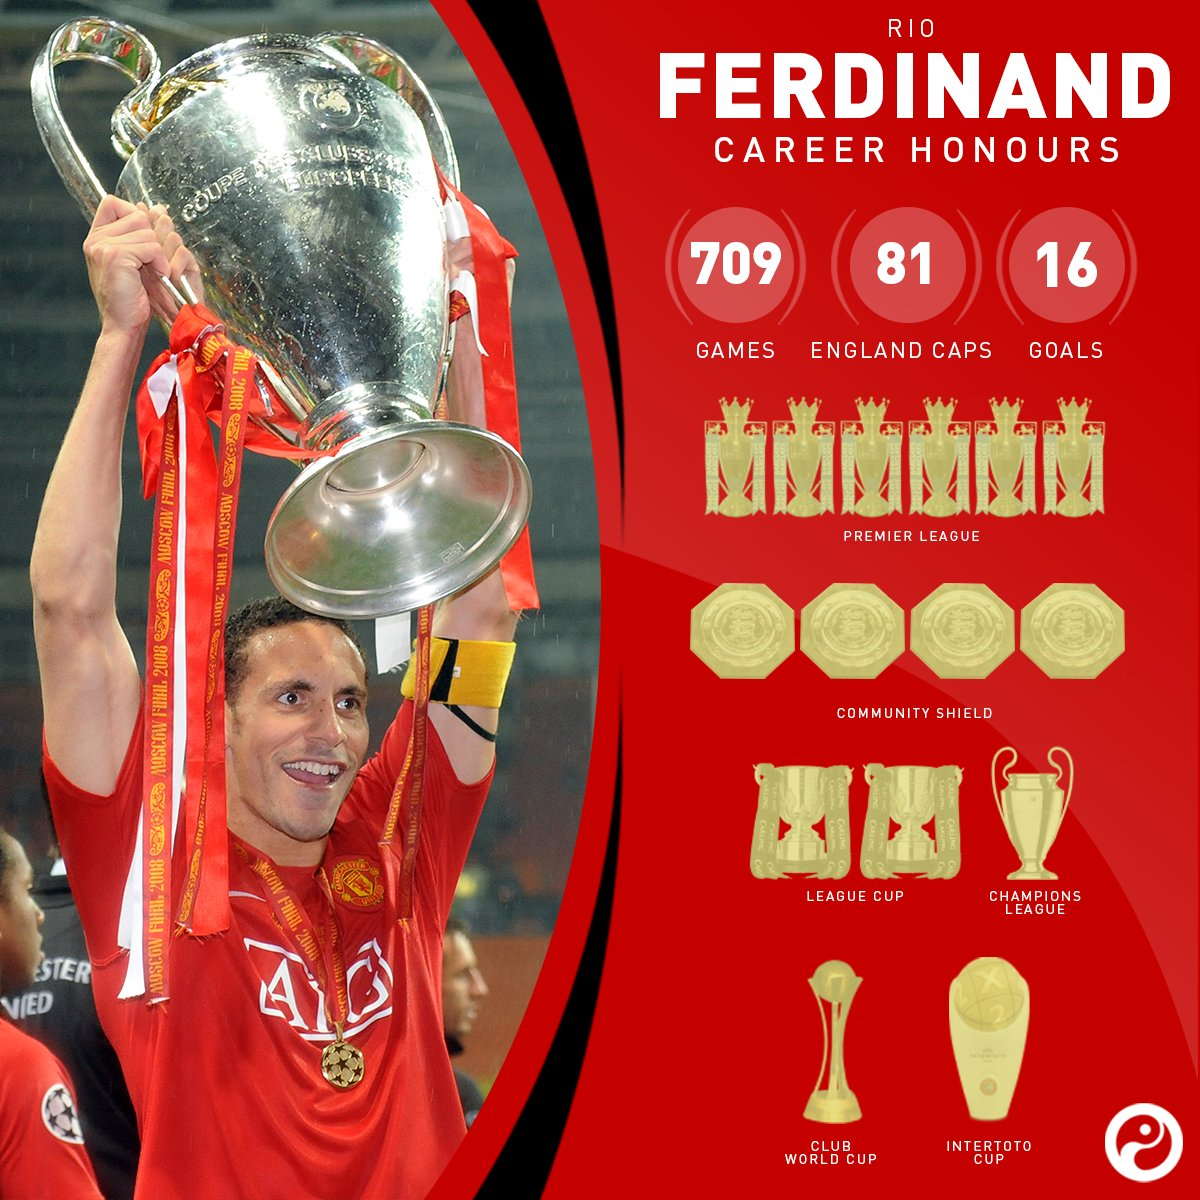 ON THIS DAY: In 2002, Manchester United signed Rio Ferdinand for £30m from Leeds United.  He would make 455 appearances for the club winning 14 trophies in the 12 seasons he was with them. https://t.co/yGXLSpEBnq